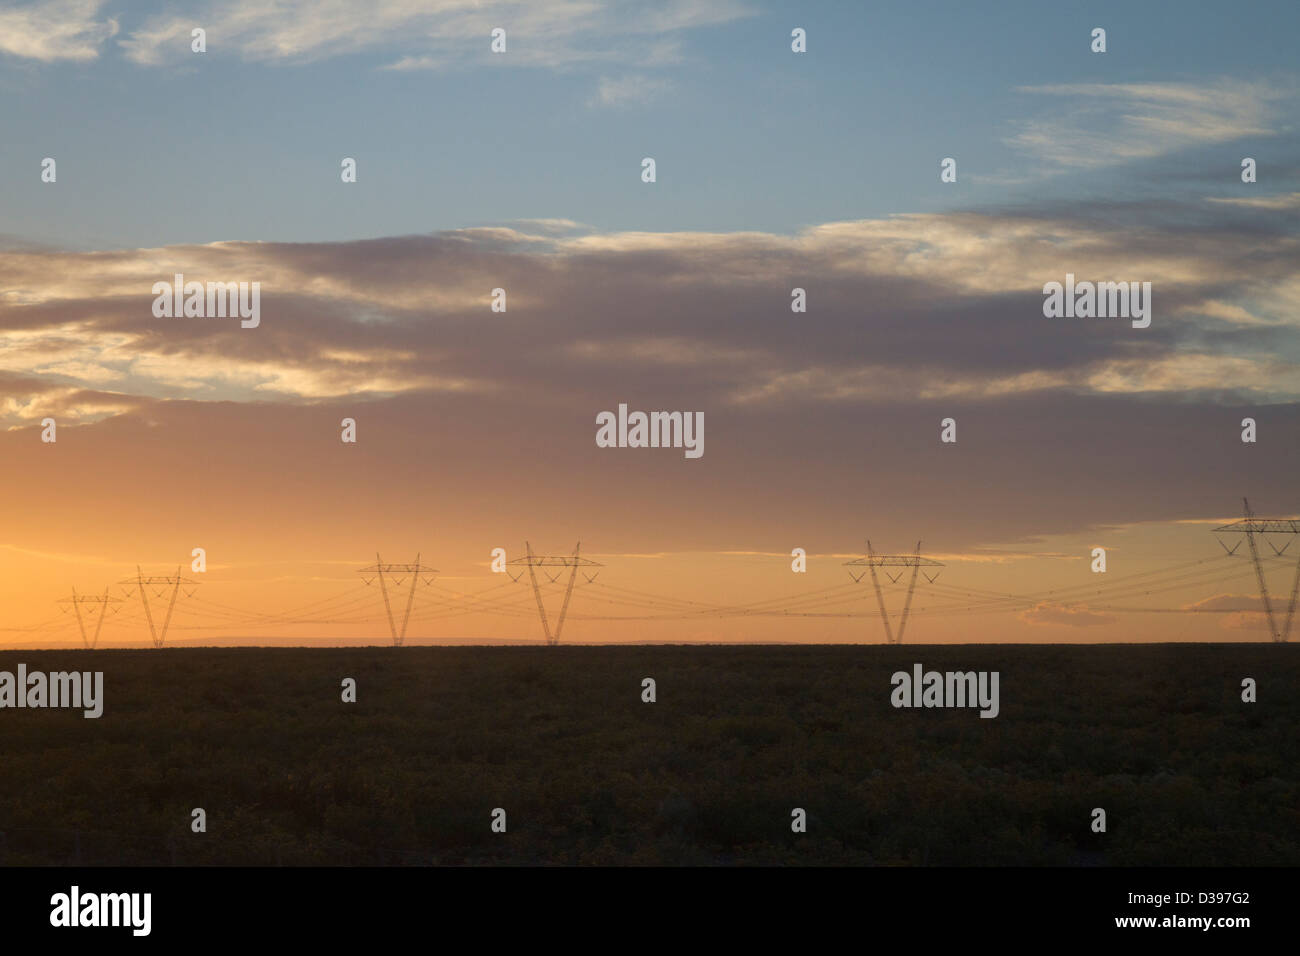 The muted sun fades below the horizon of the Argentine pampa region - Stock Image